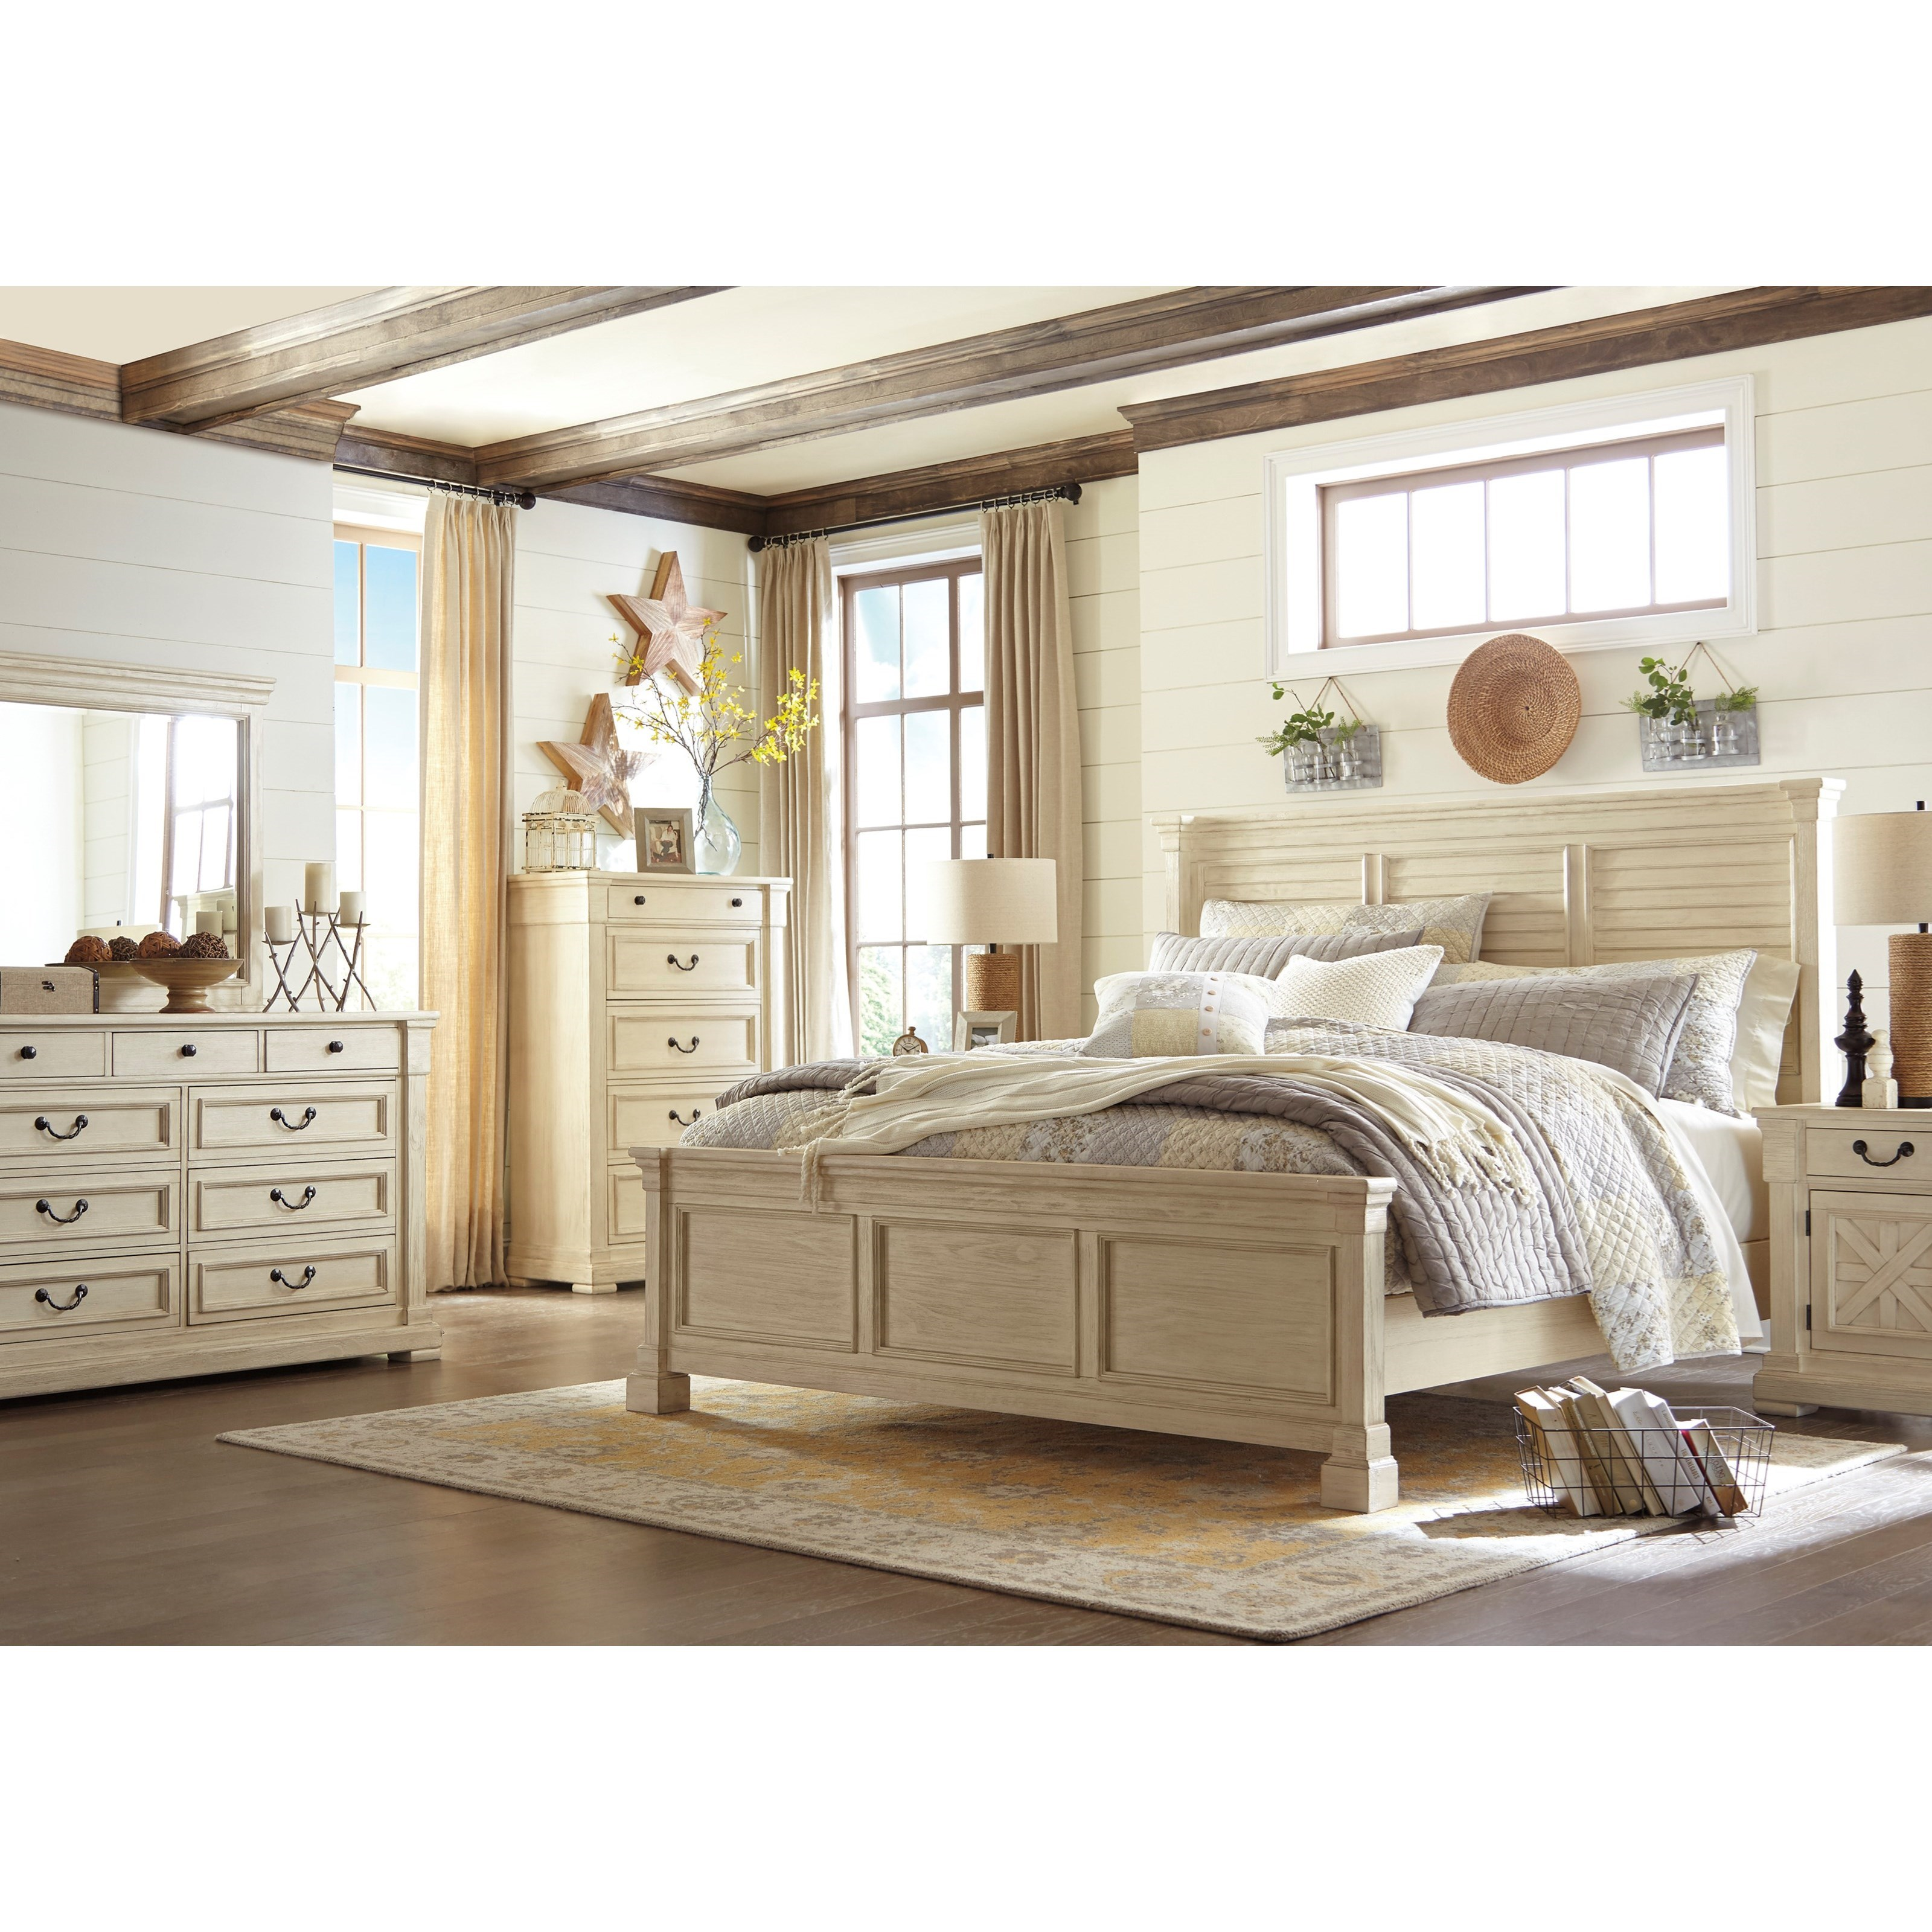 Signature design by ashley bolanburg queen bedroom group for Signature bedroom furniture